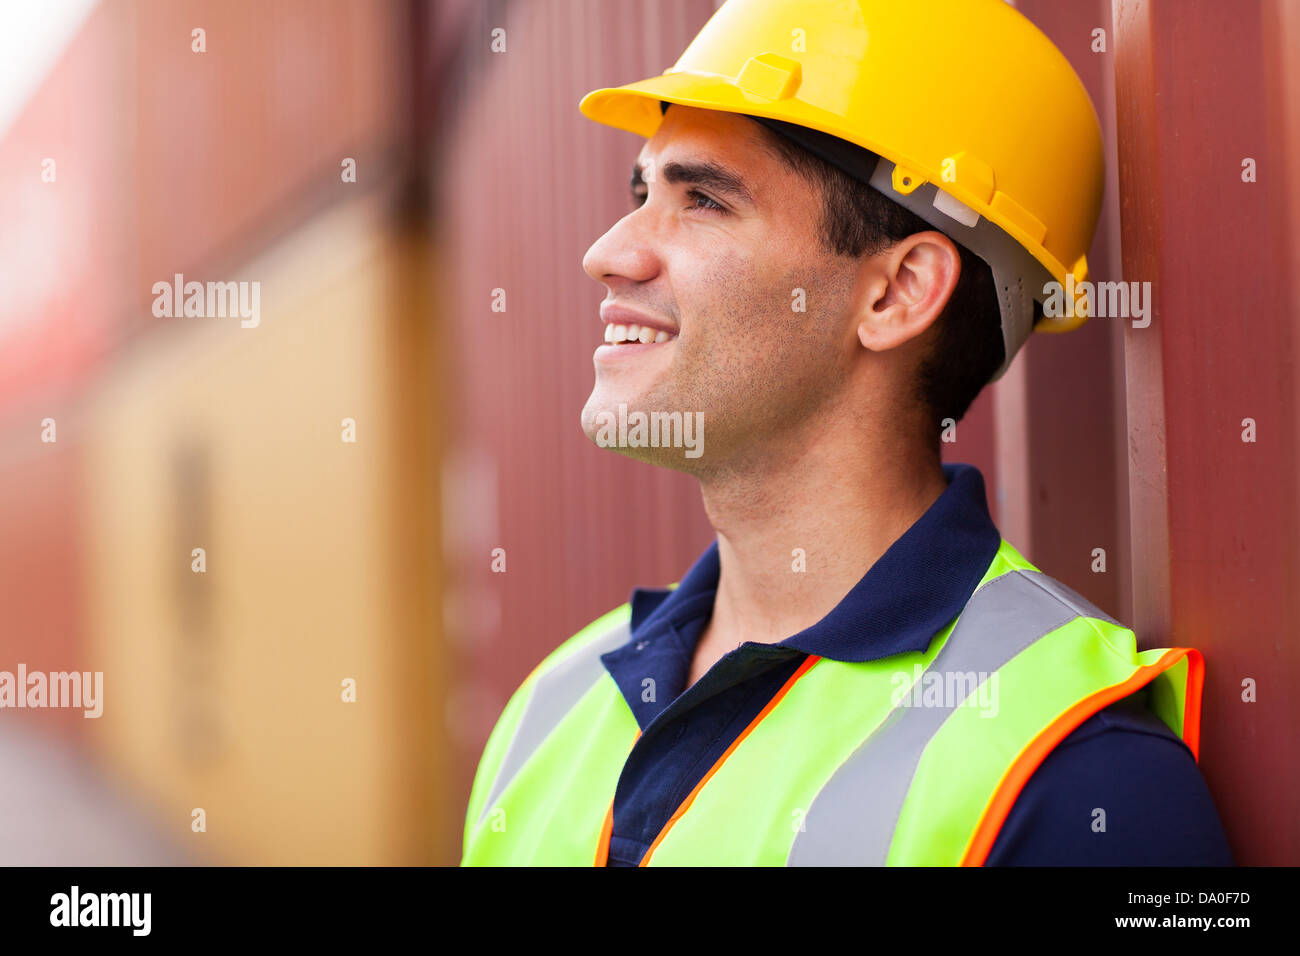 optimistic young harbor worker in container yard - Stock Image